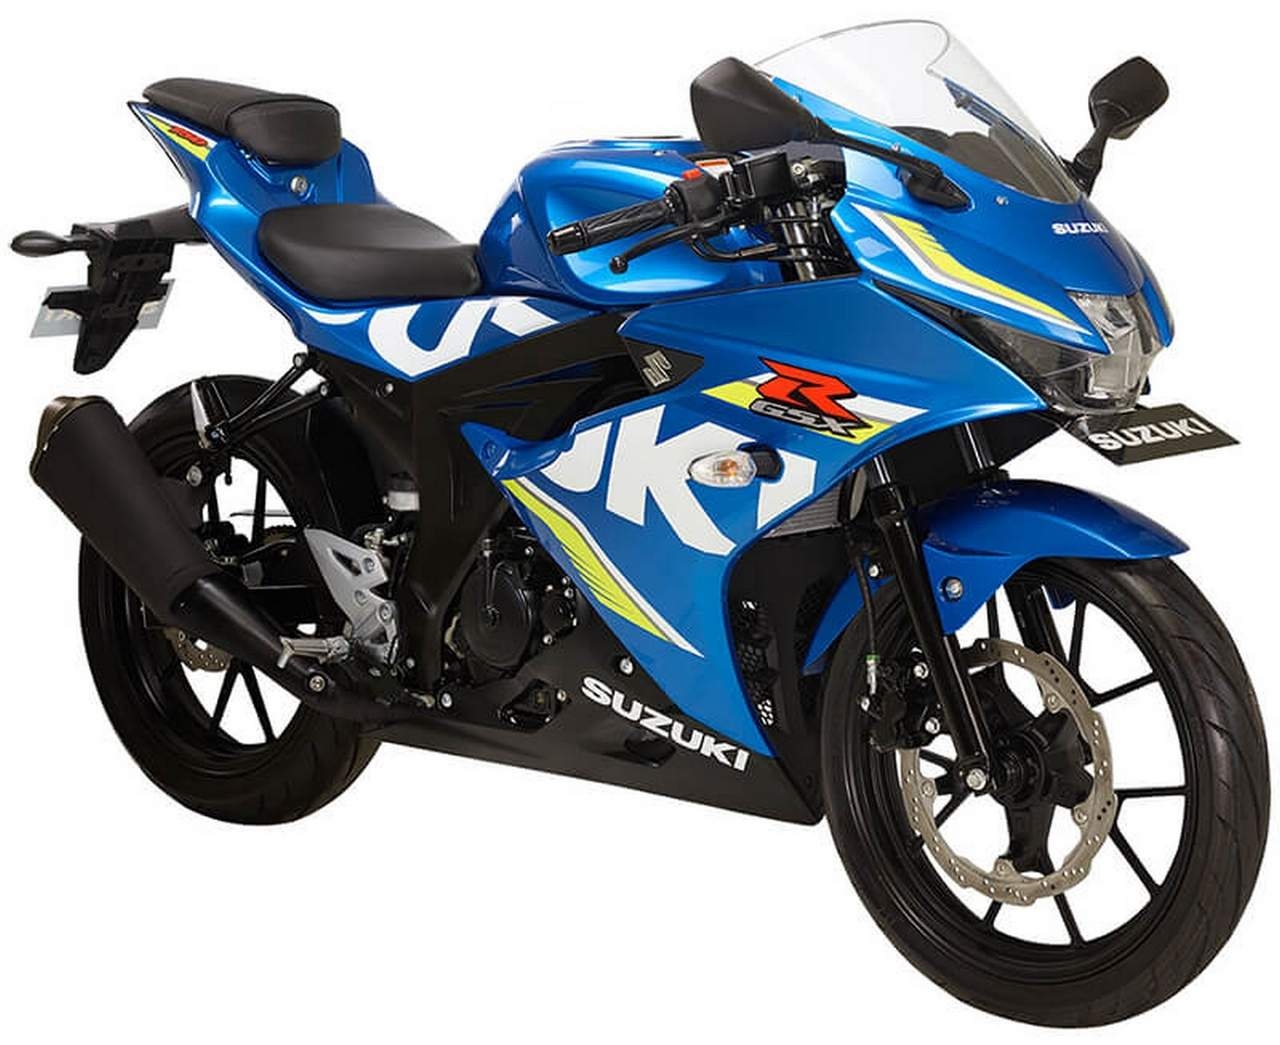 New Suzuki Gsx R150 Beats Yzf R15 Amp Cbr150r In Terms Of